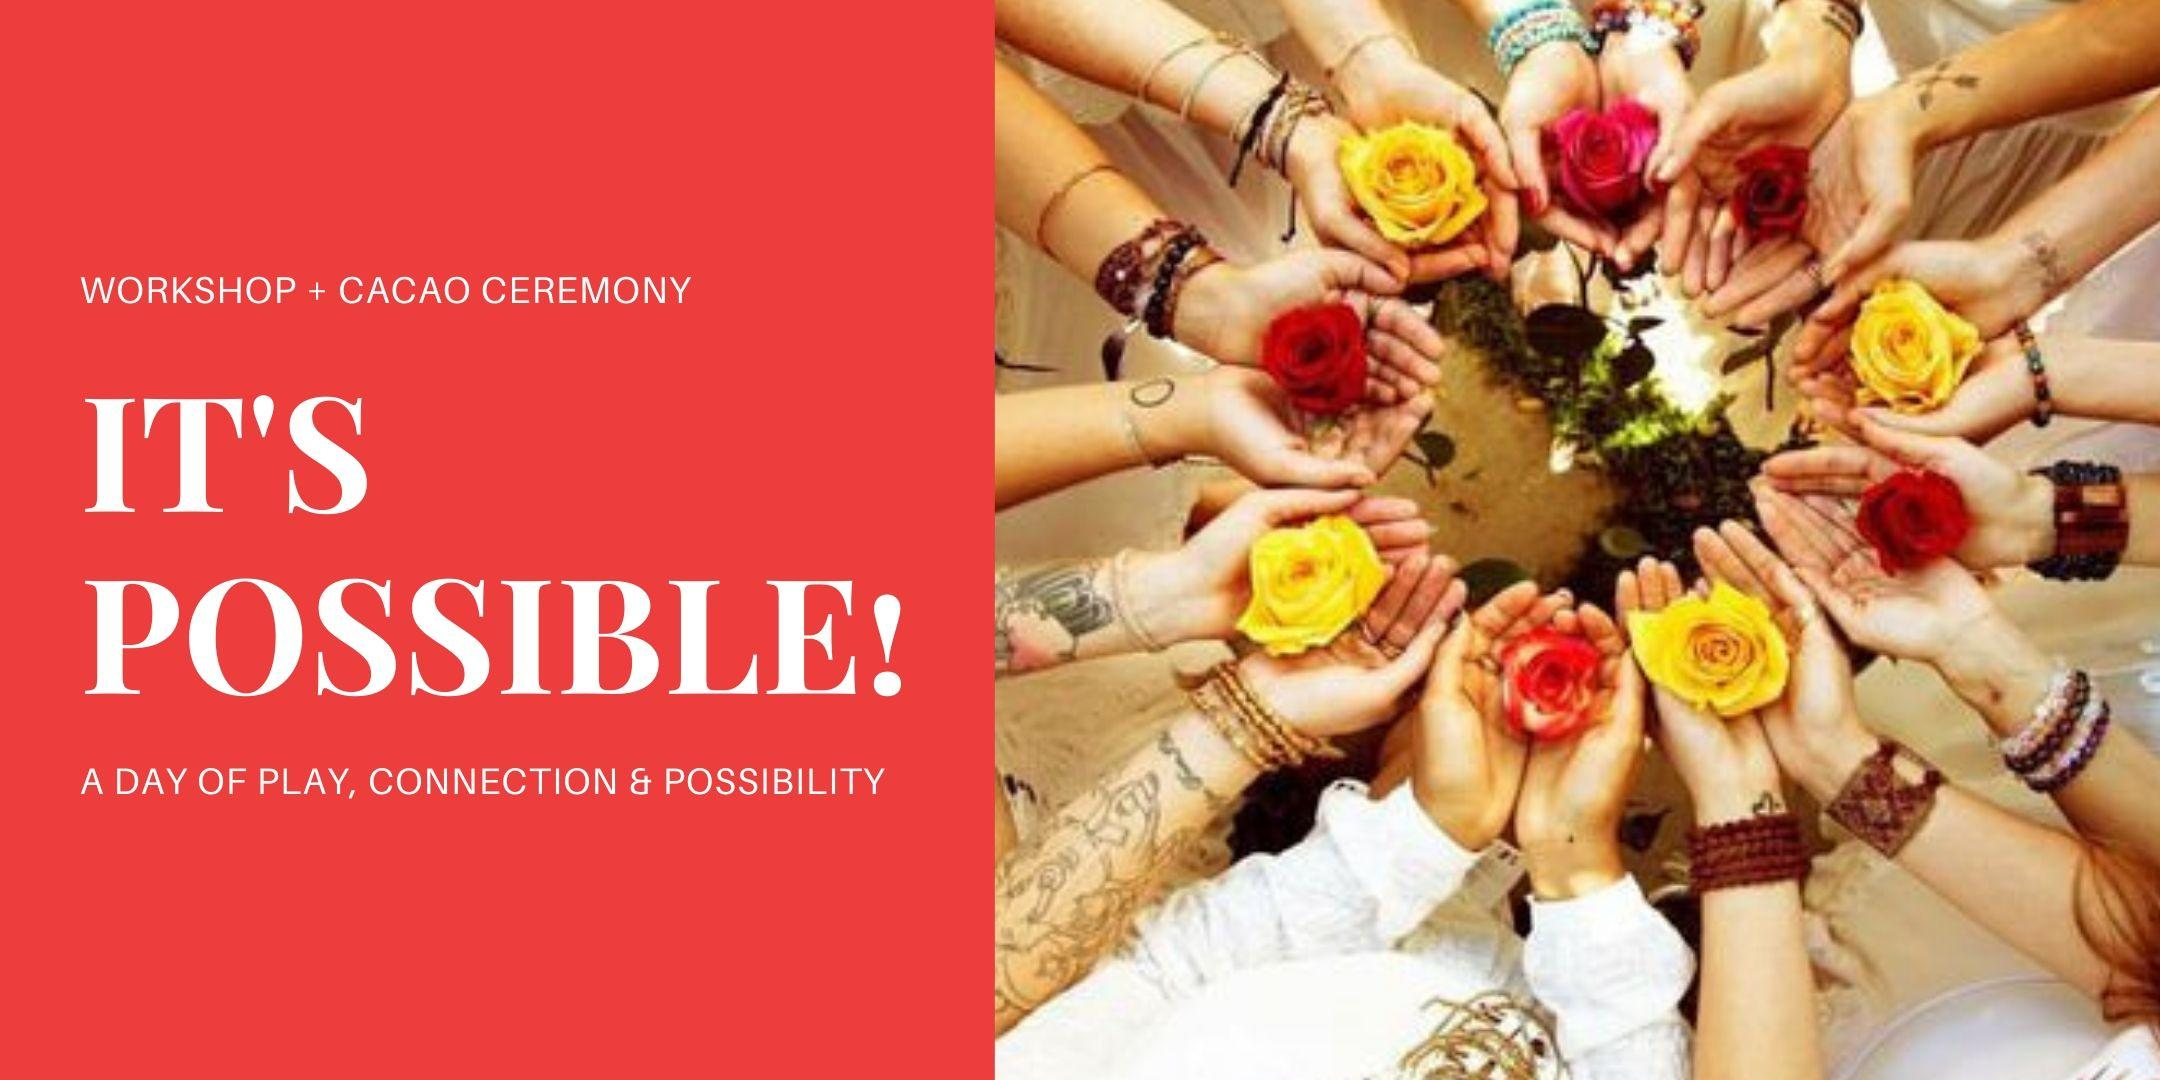 IT'S POSSIBLE! Workshop: A day of Play, Connection and Possibility